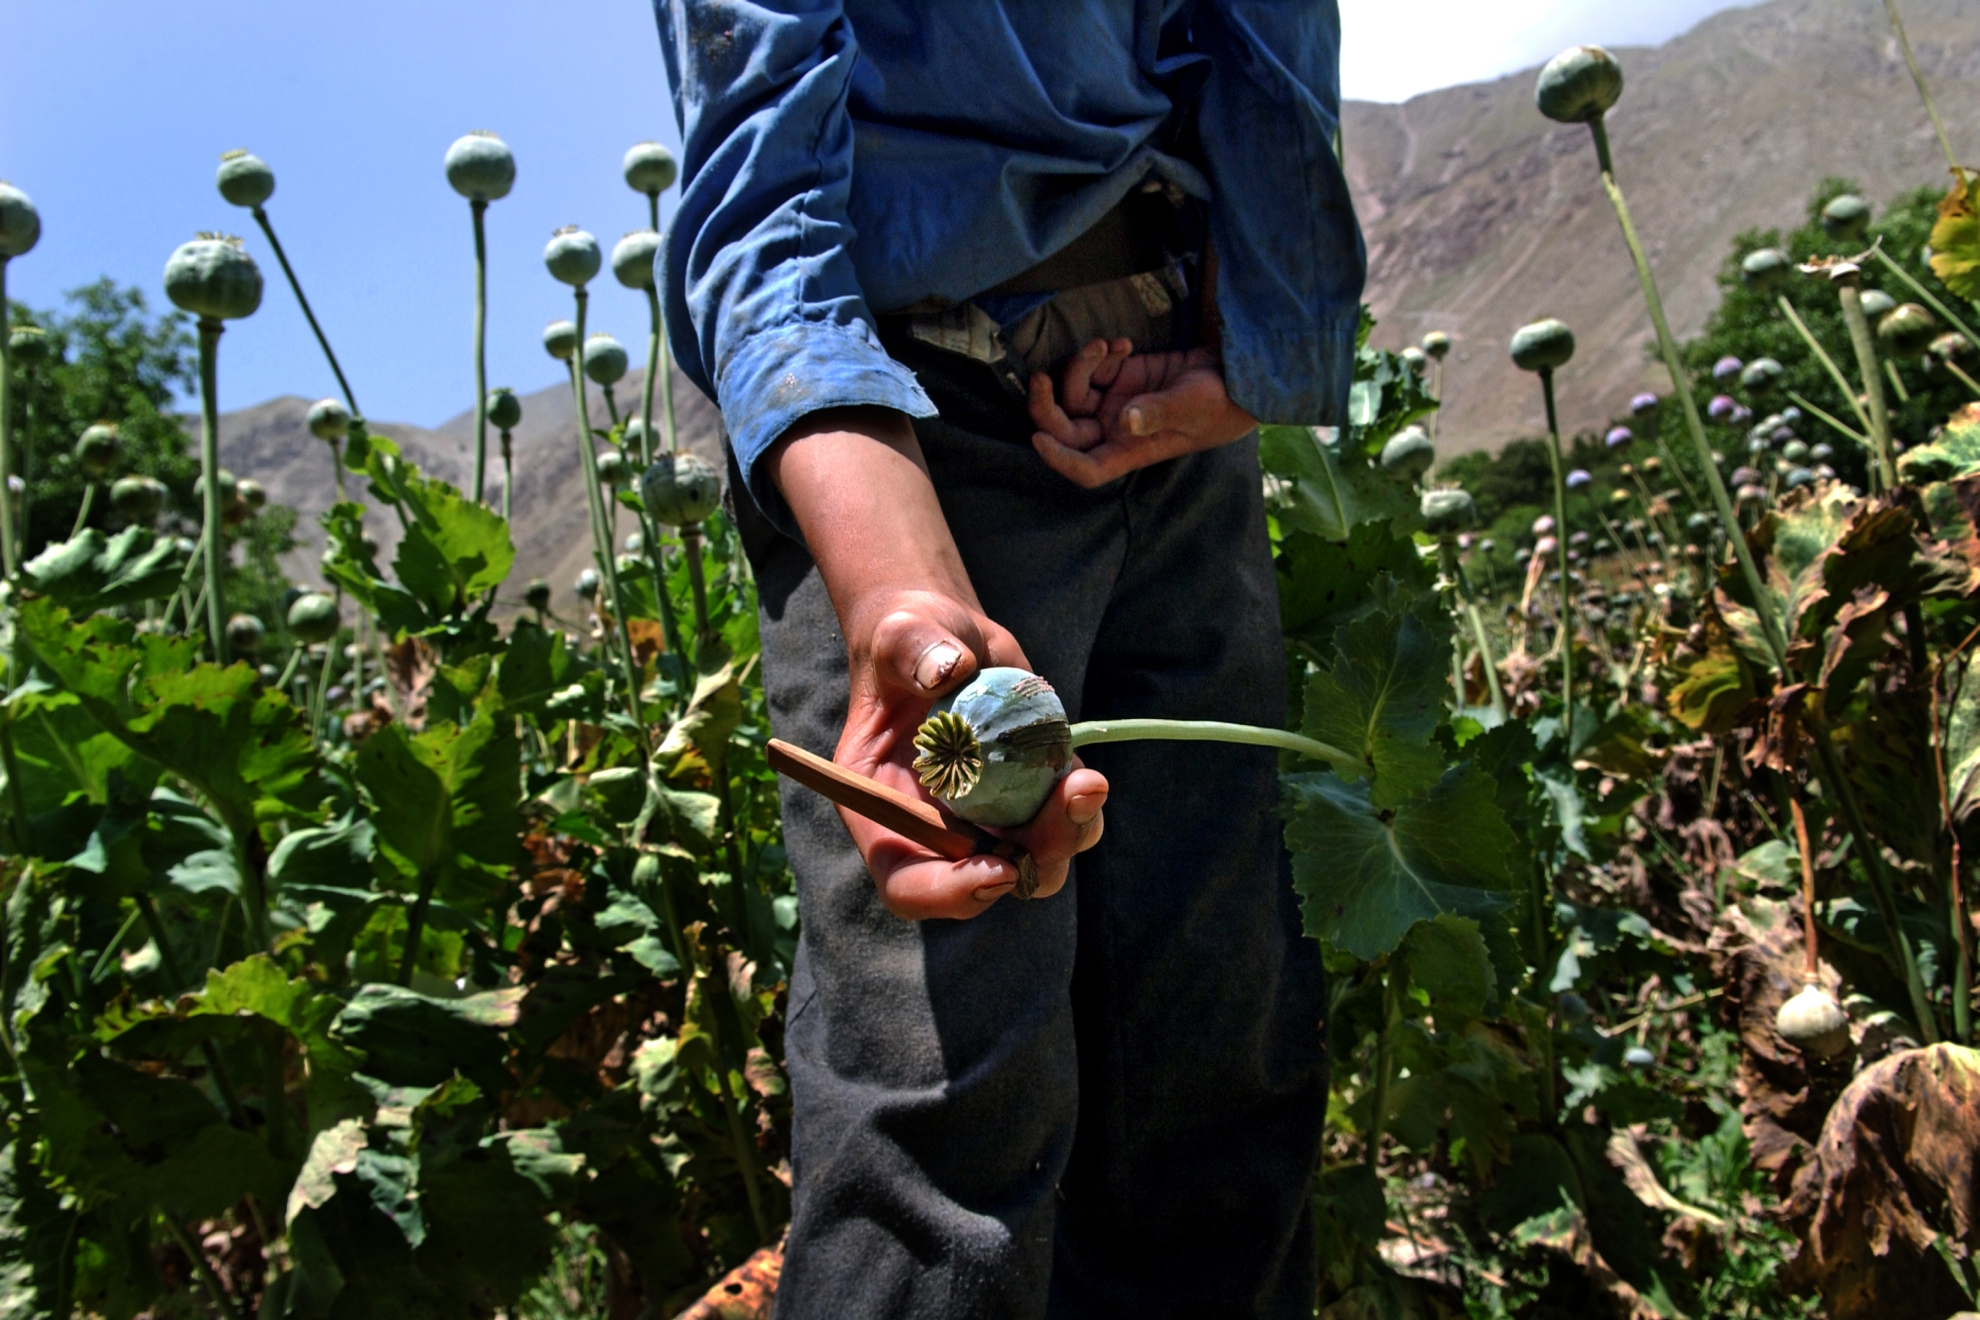 Opium is extracted from the poppy flower. A cut is made in the flower through which the pulp comes out. It is then collected and pressed, and some of it is consumed directly as opium, while some is refined into heroin. The whole process is very labour-intensive, and opium production employs many people in Afghanistan. Photo: UN Photo/UNODC/Zalmai, 2005